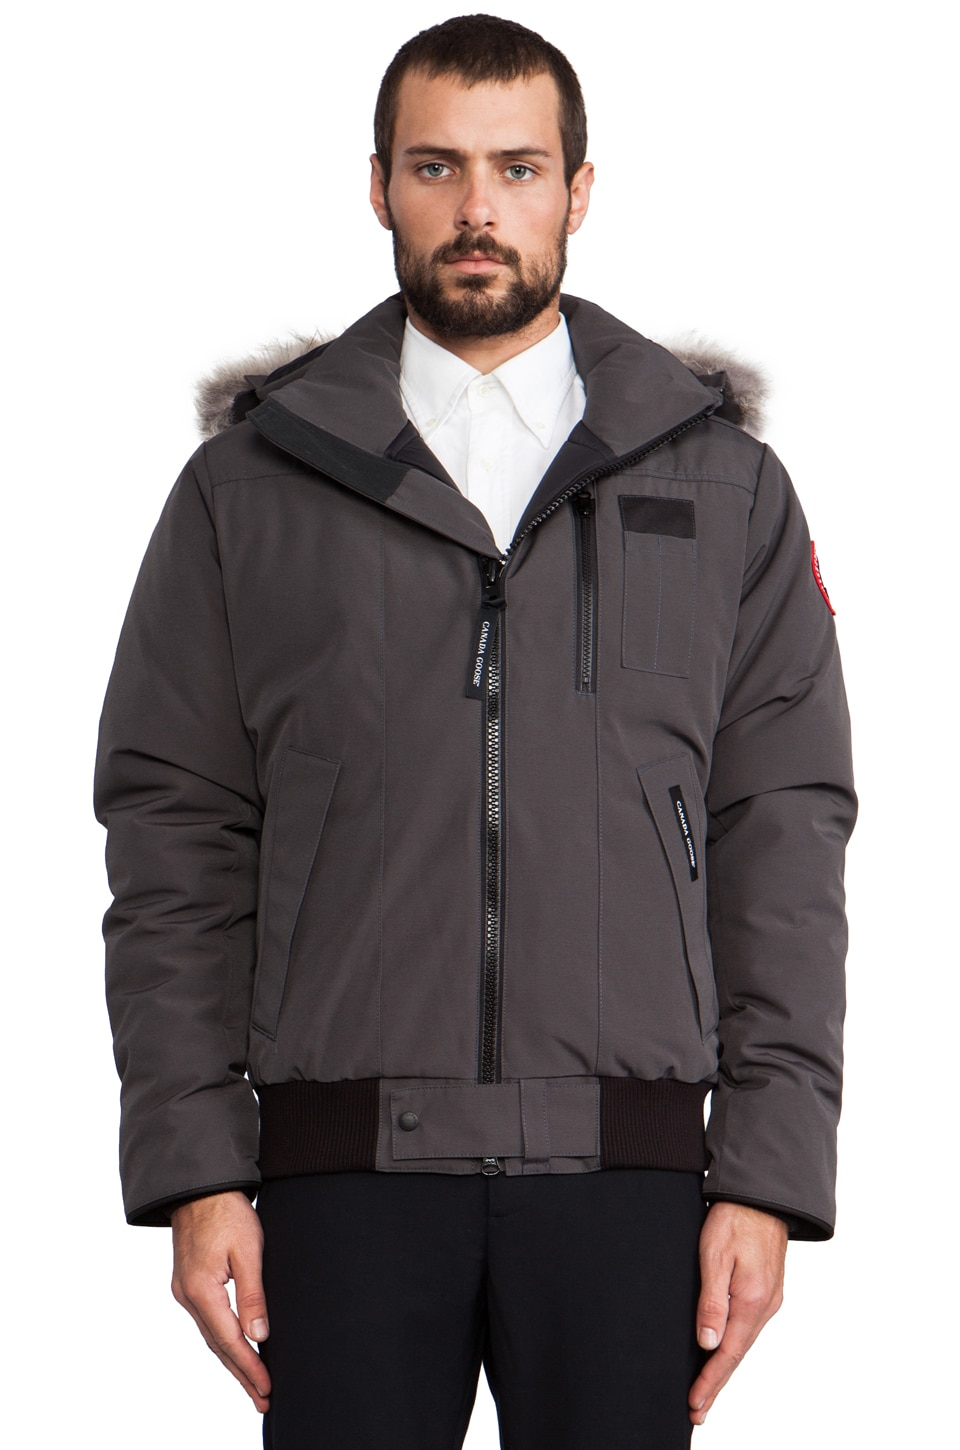 Canada Goose Borden Bomber with Coyote Fur Collar in Graphite